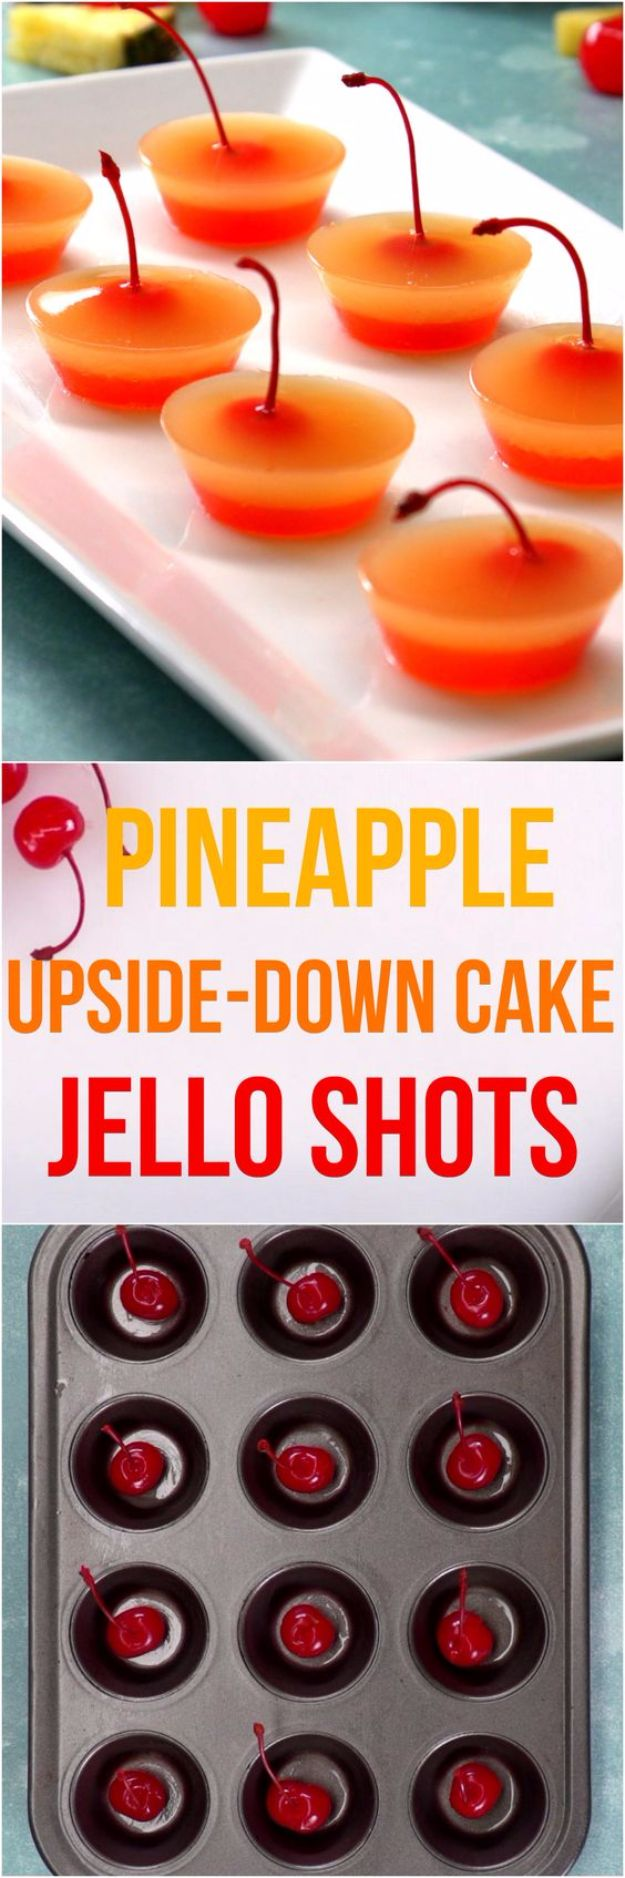 Best Jello Shot Recipes - Pineapple Upside-Down Cake Jell-O Shots - Easy Jello Shots Recipe Ideas with Vodka, Strawberry, Tequila, Rum, Jolly Rancher and Creative Alcohol - Unique and Fun Drinks for Parties like Whiskey Fireball, Fall Halloween Versions, Malibu, 4th of July, Birthday, Summer, Christmas and Birthdays #jelloshots #partydrinks #drinkrecipes